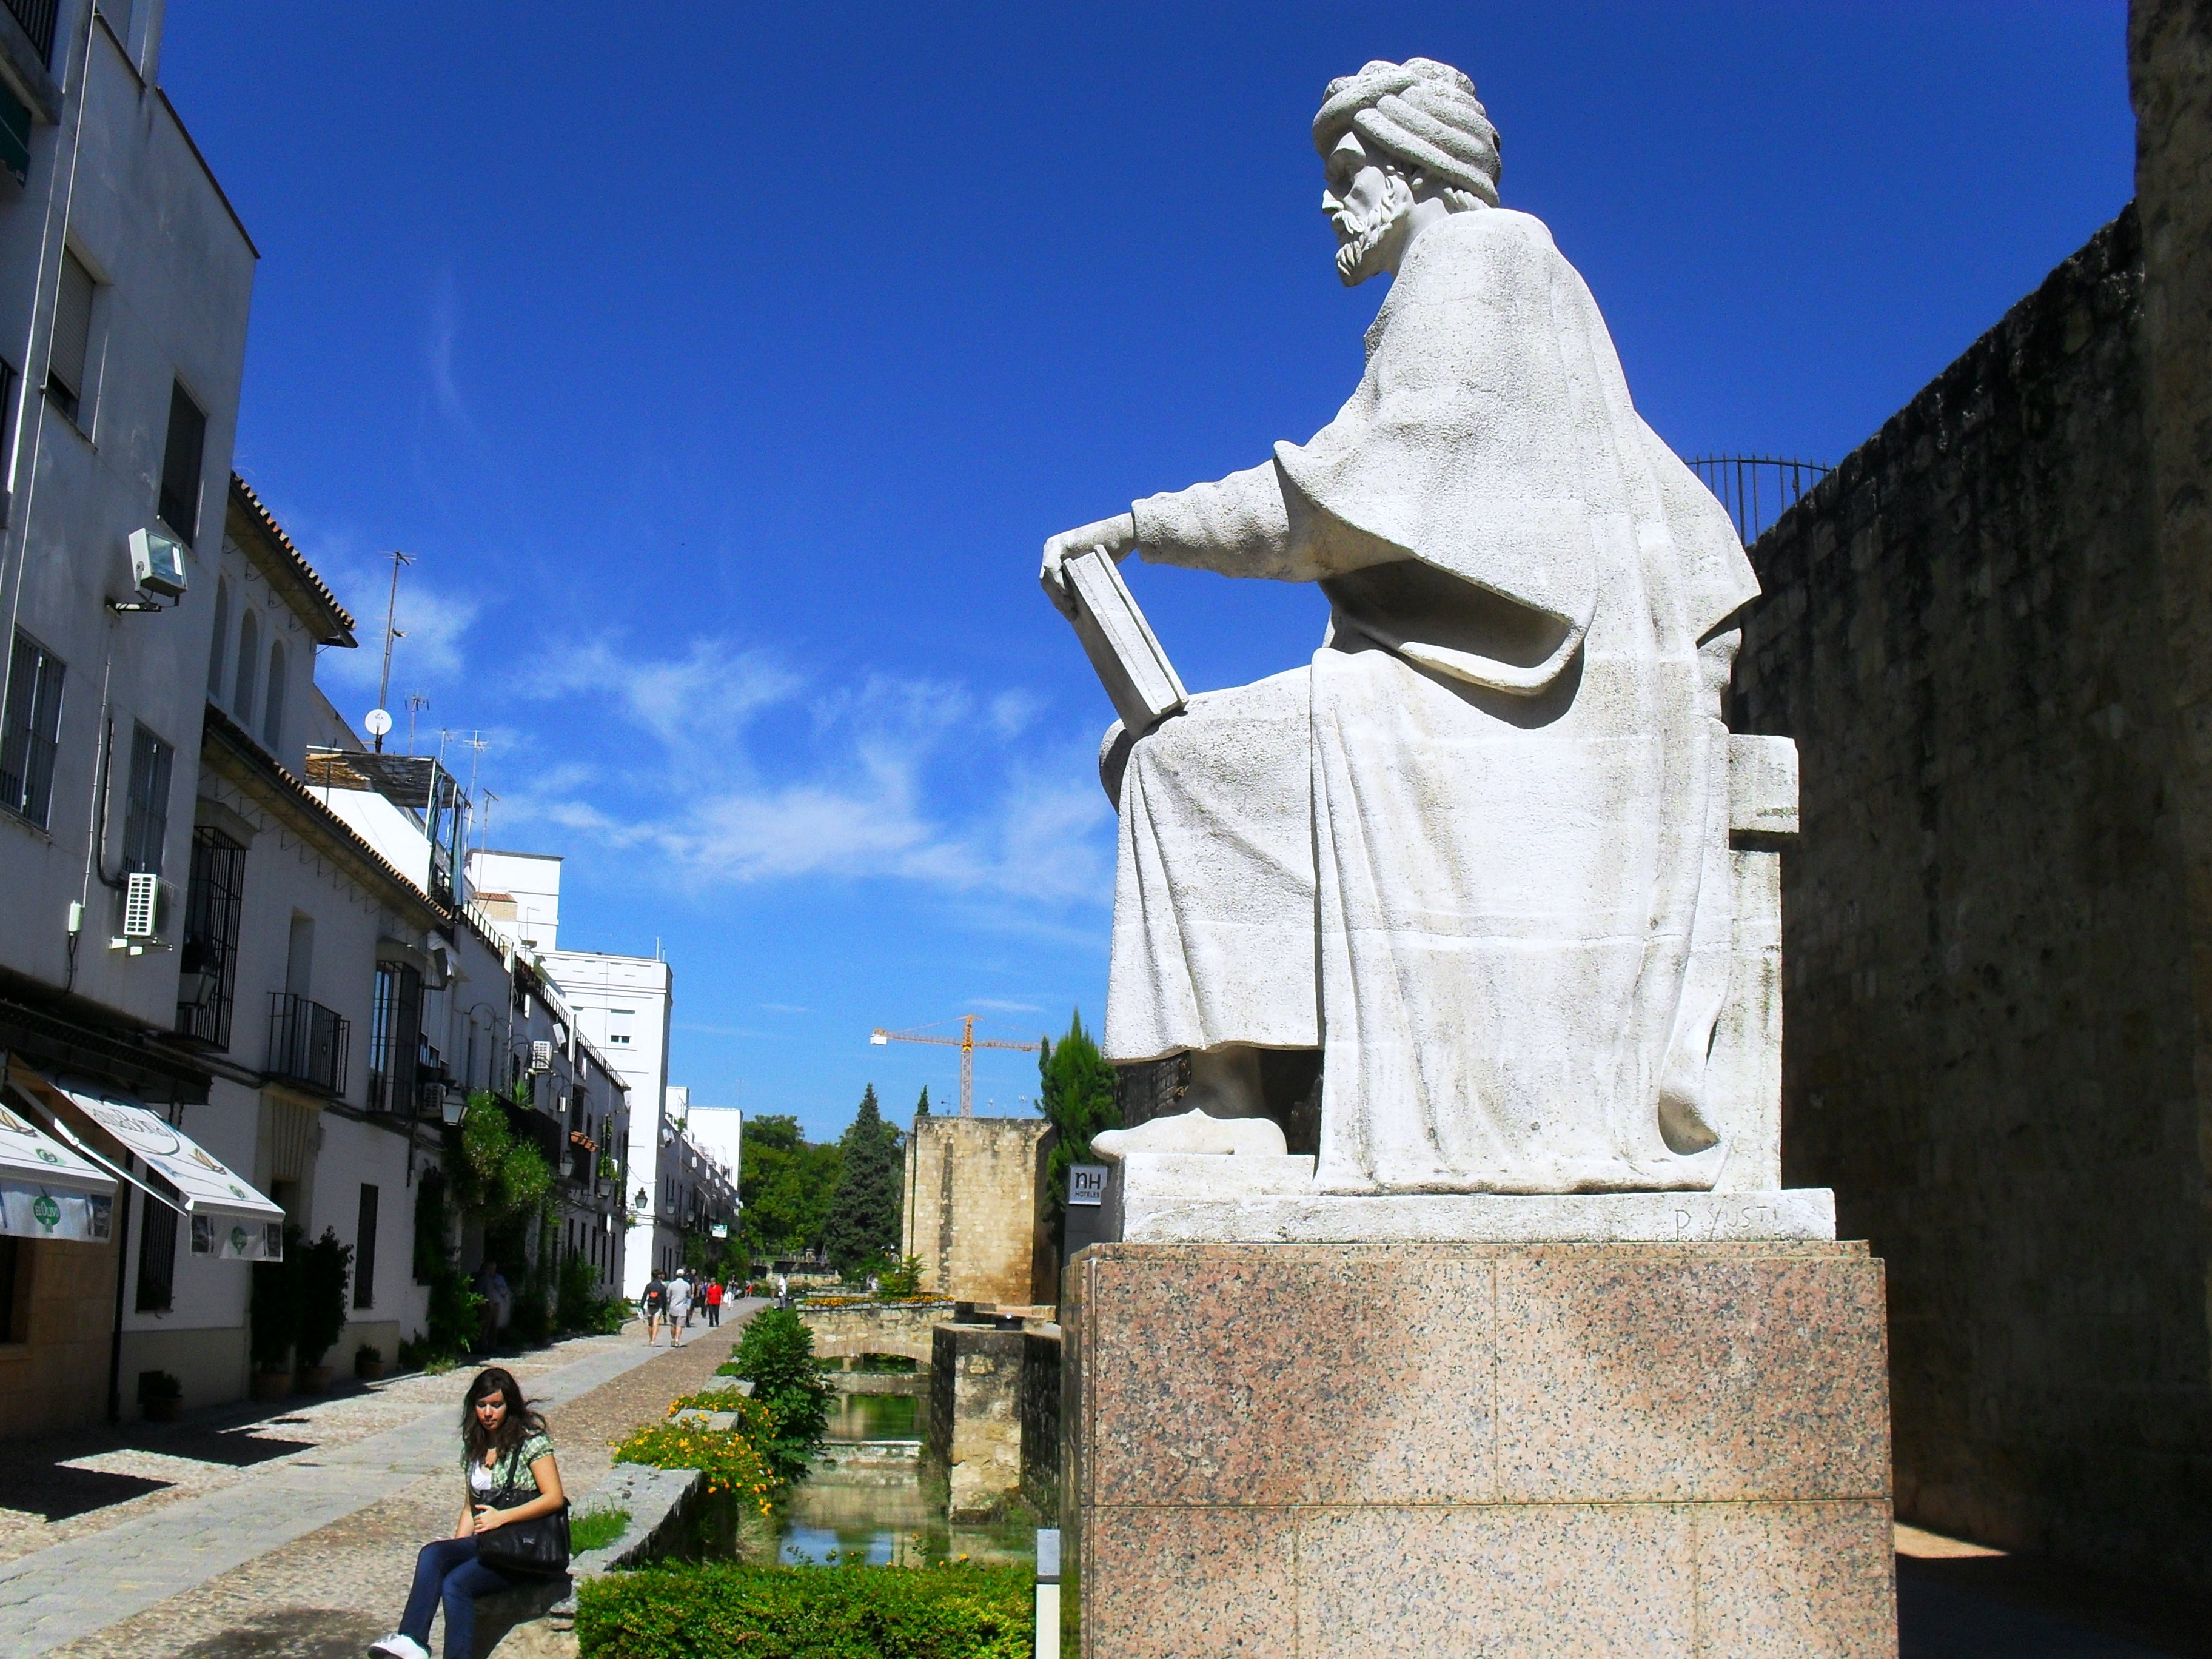 Monumento a Averroes